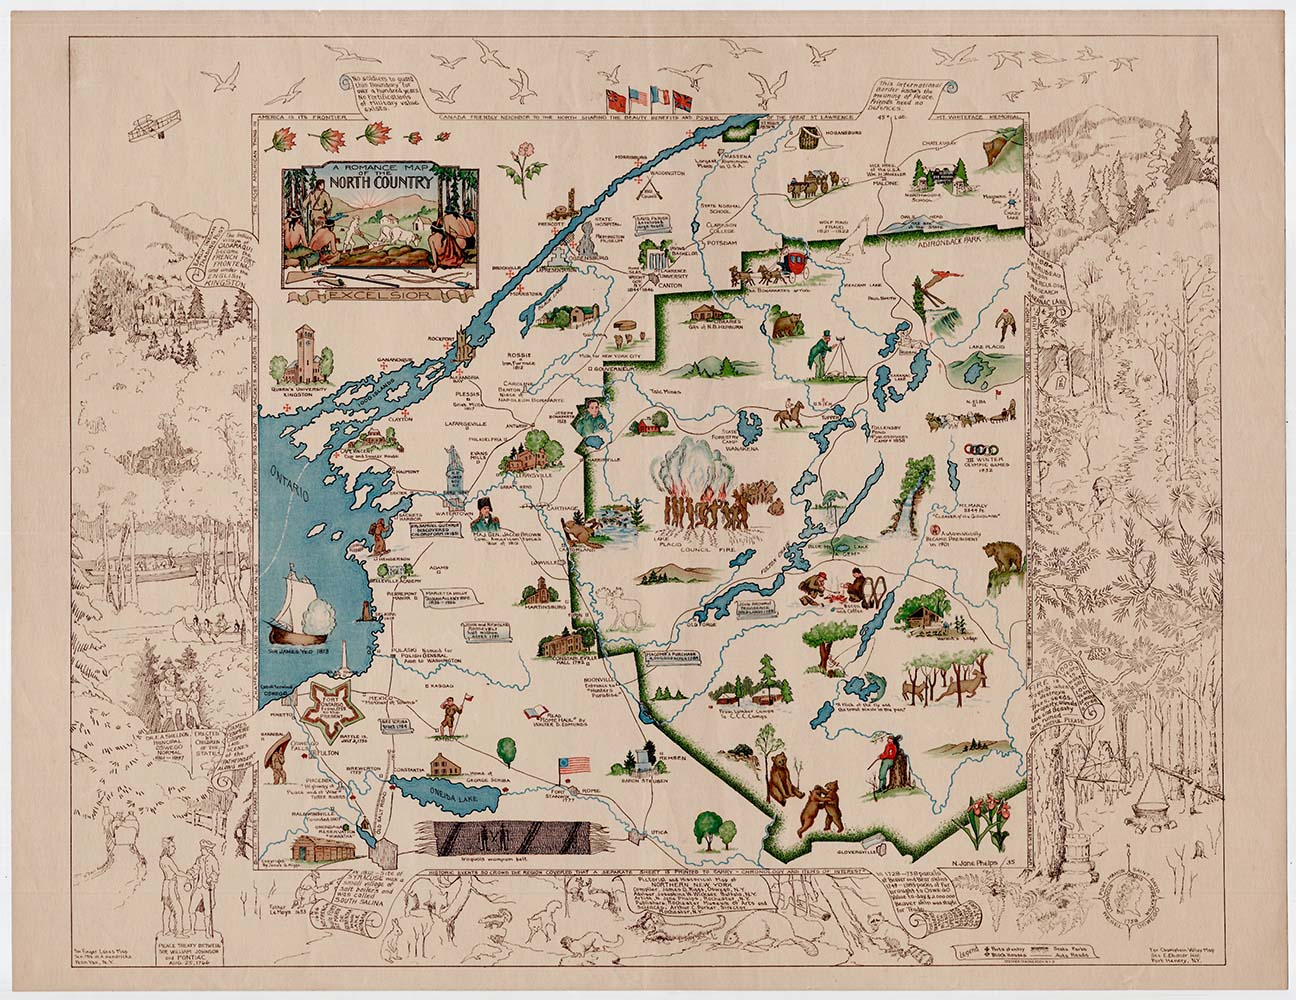 Map Of Northern New York.A Romance Map Of The North Country Secondary Title Pictorial And Historic Map Of Northern New York By N Jane Phelps James G Riggs Josephine On